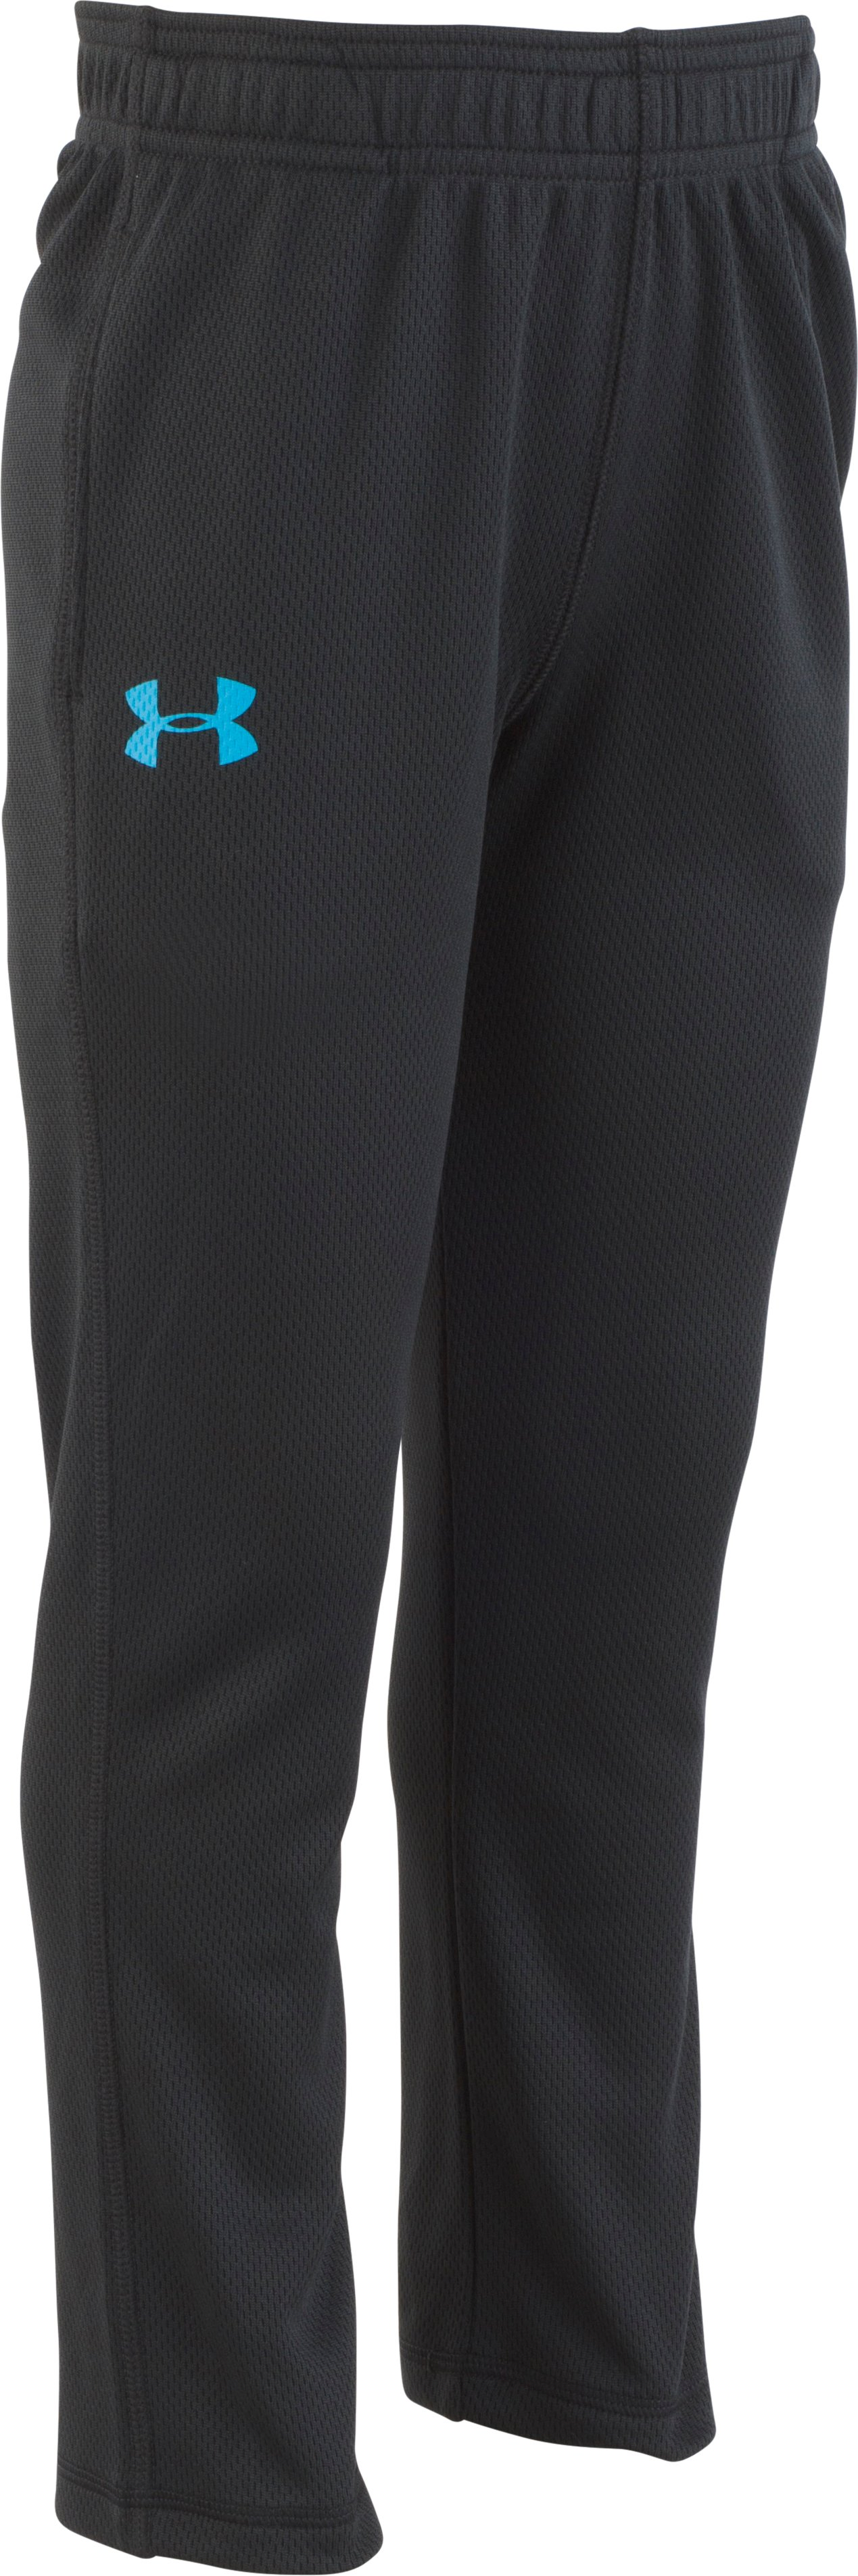 Boys' Toddler UA Brute Pants, Black